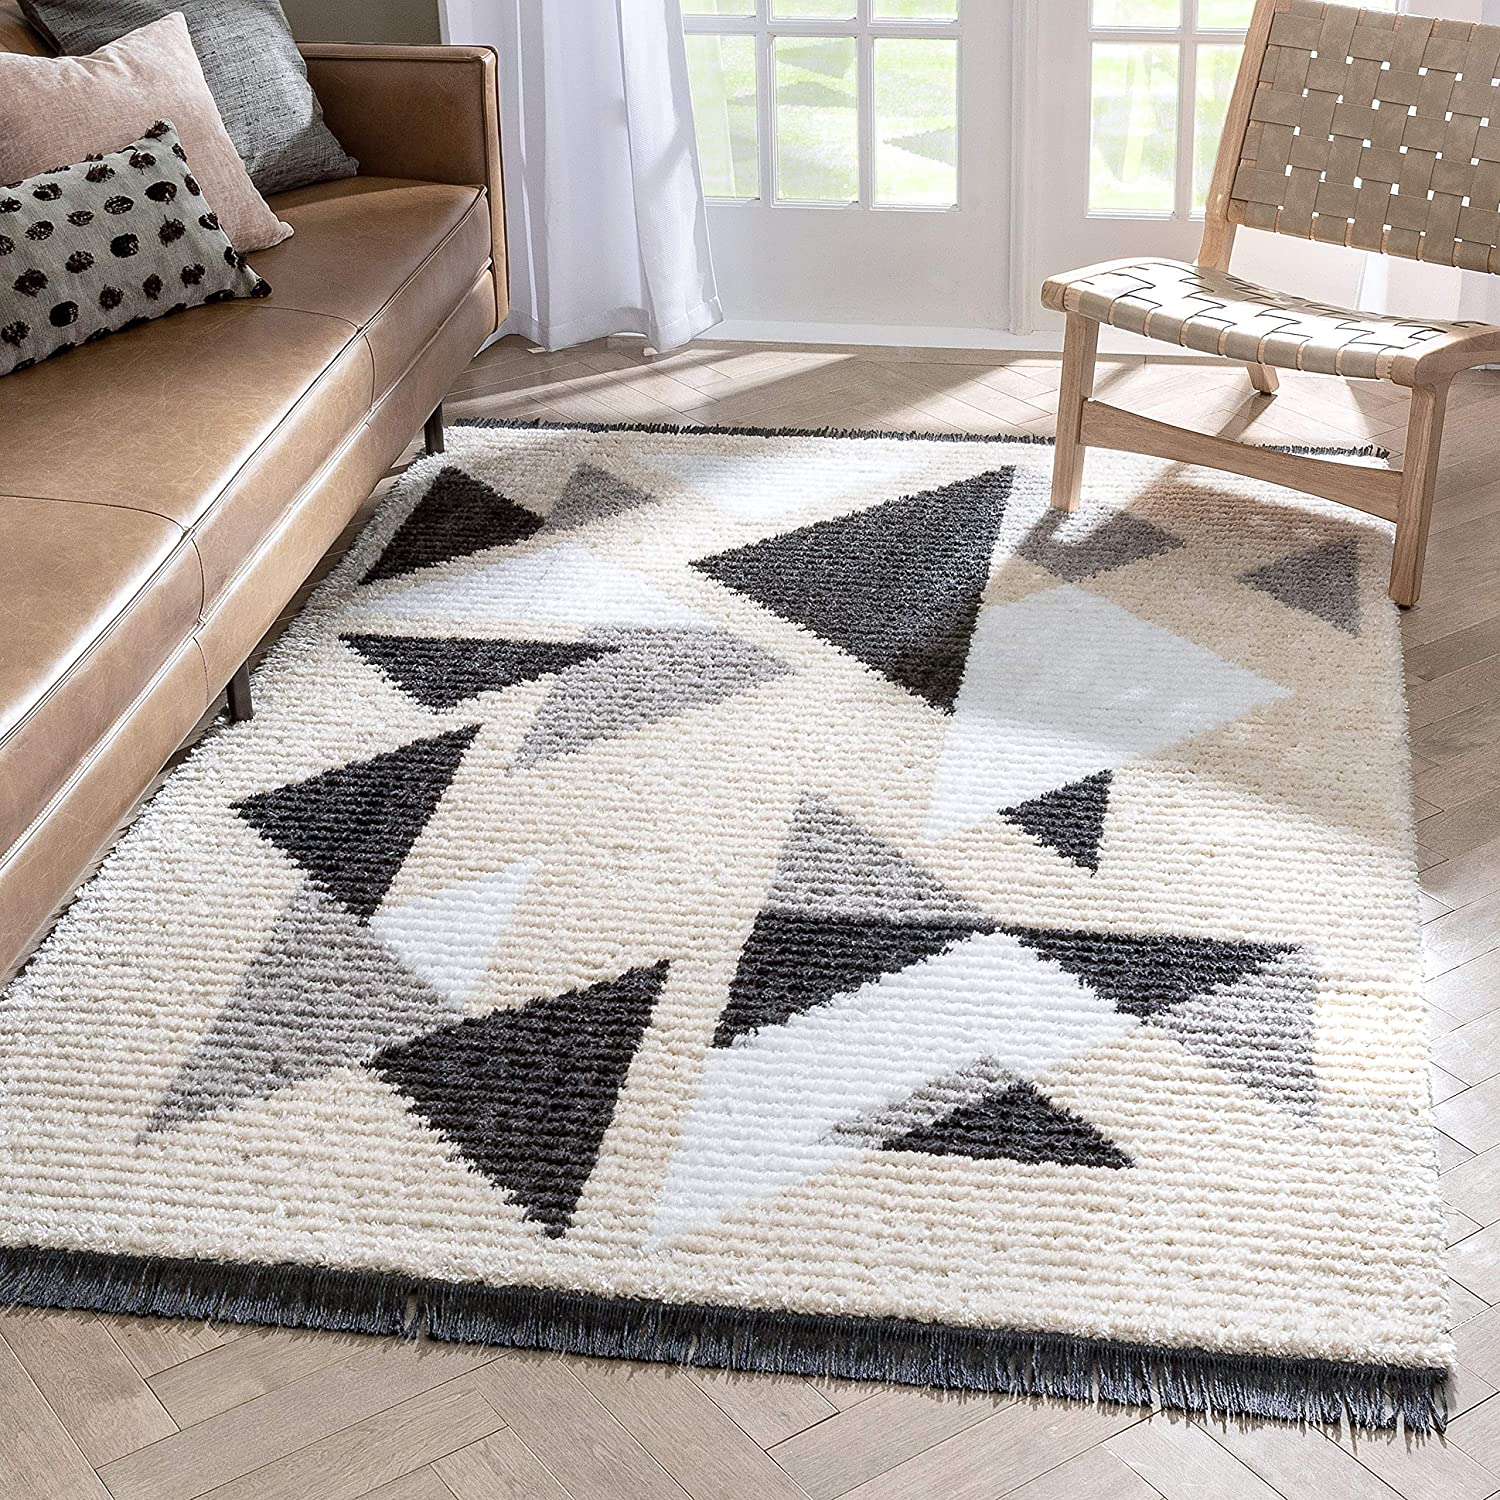 Well Woven Eterena Grey Tribal Abstract Luxury goods Patt Geometric 2021 new Triangles